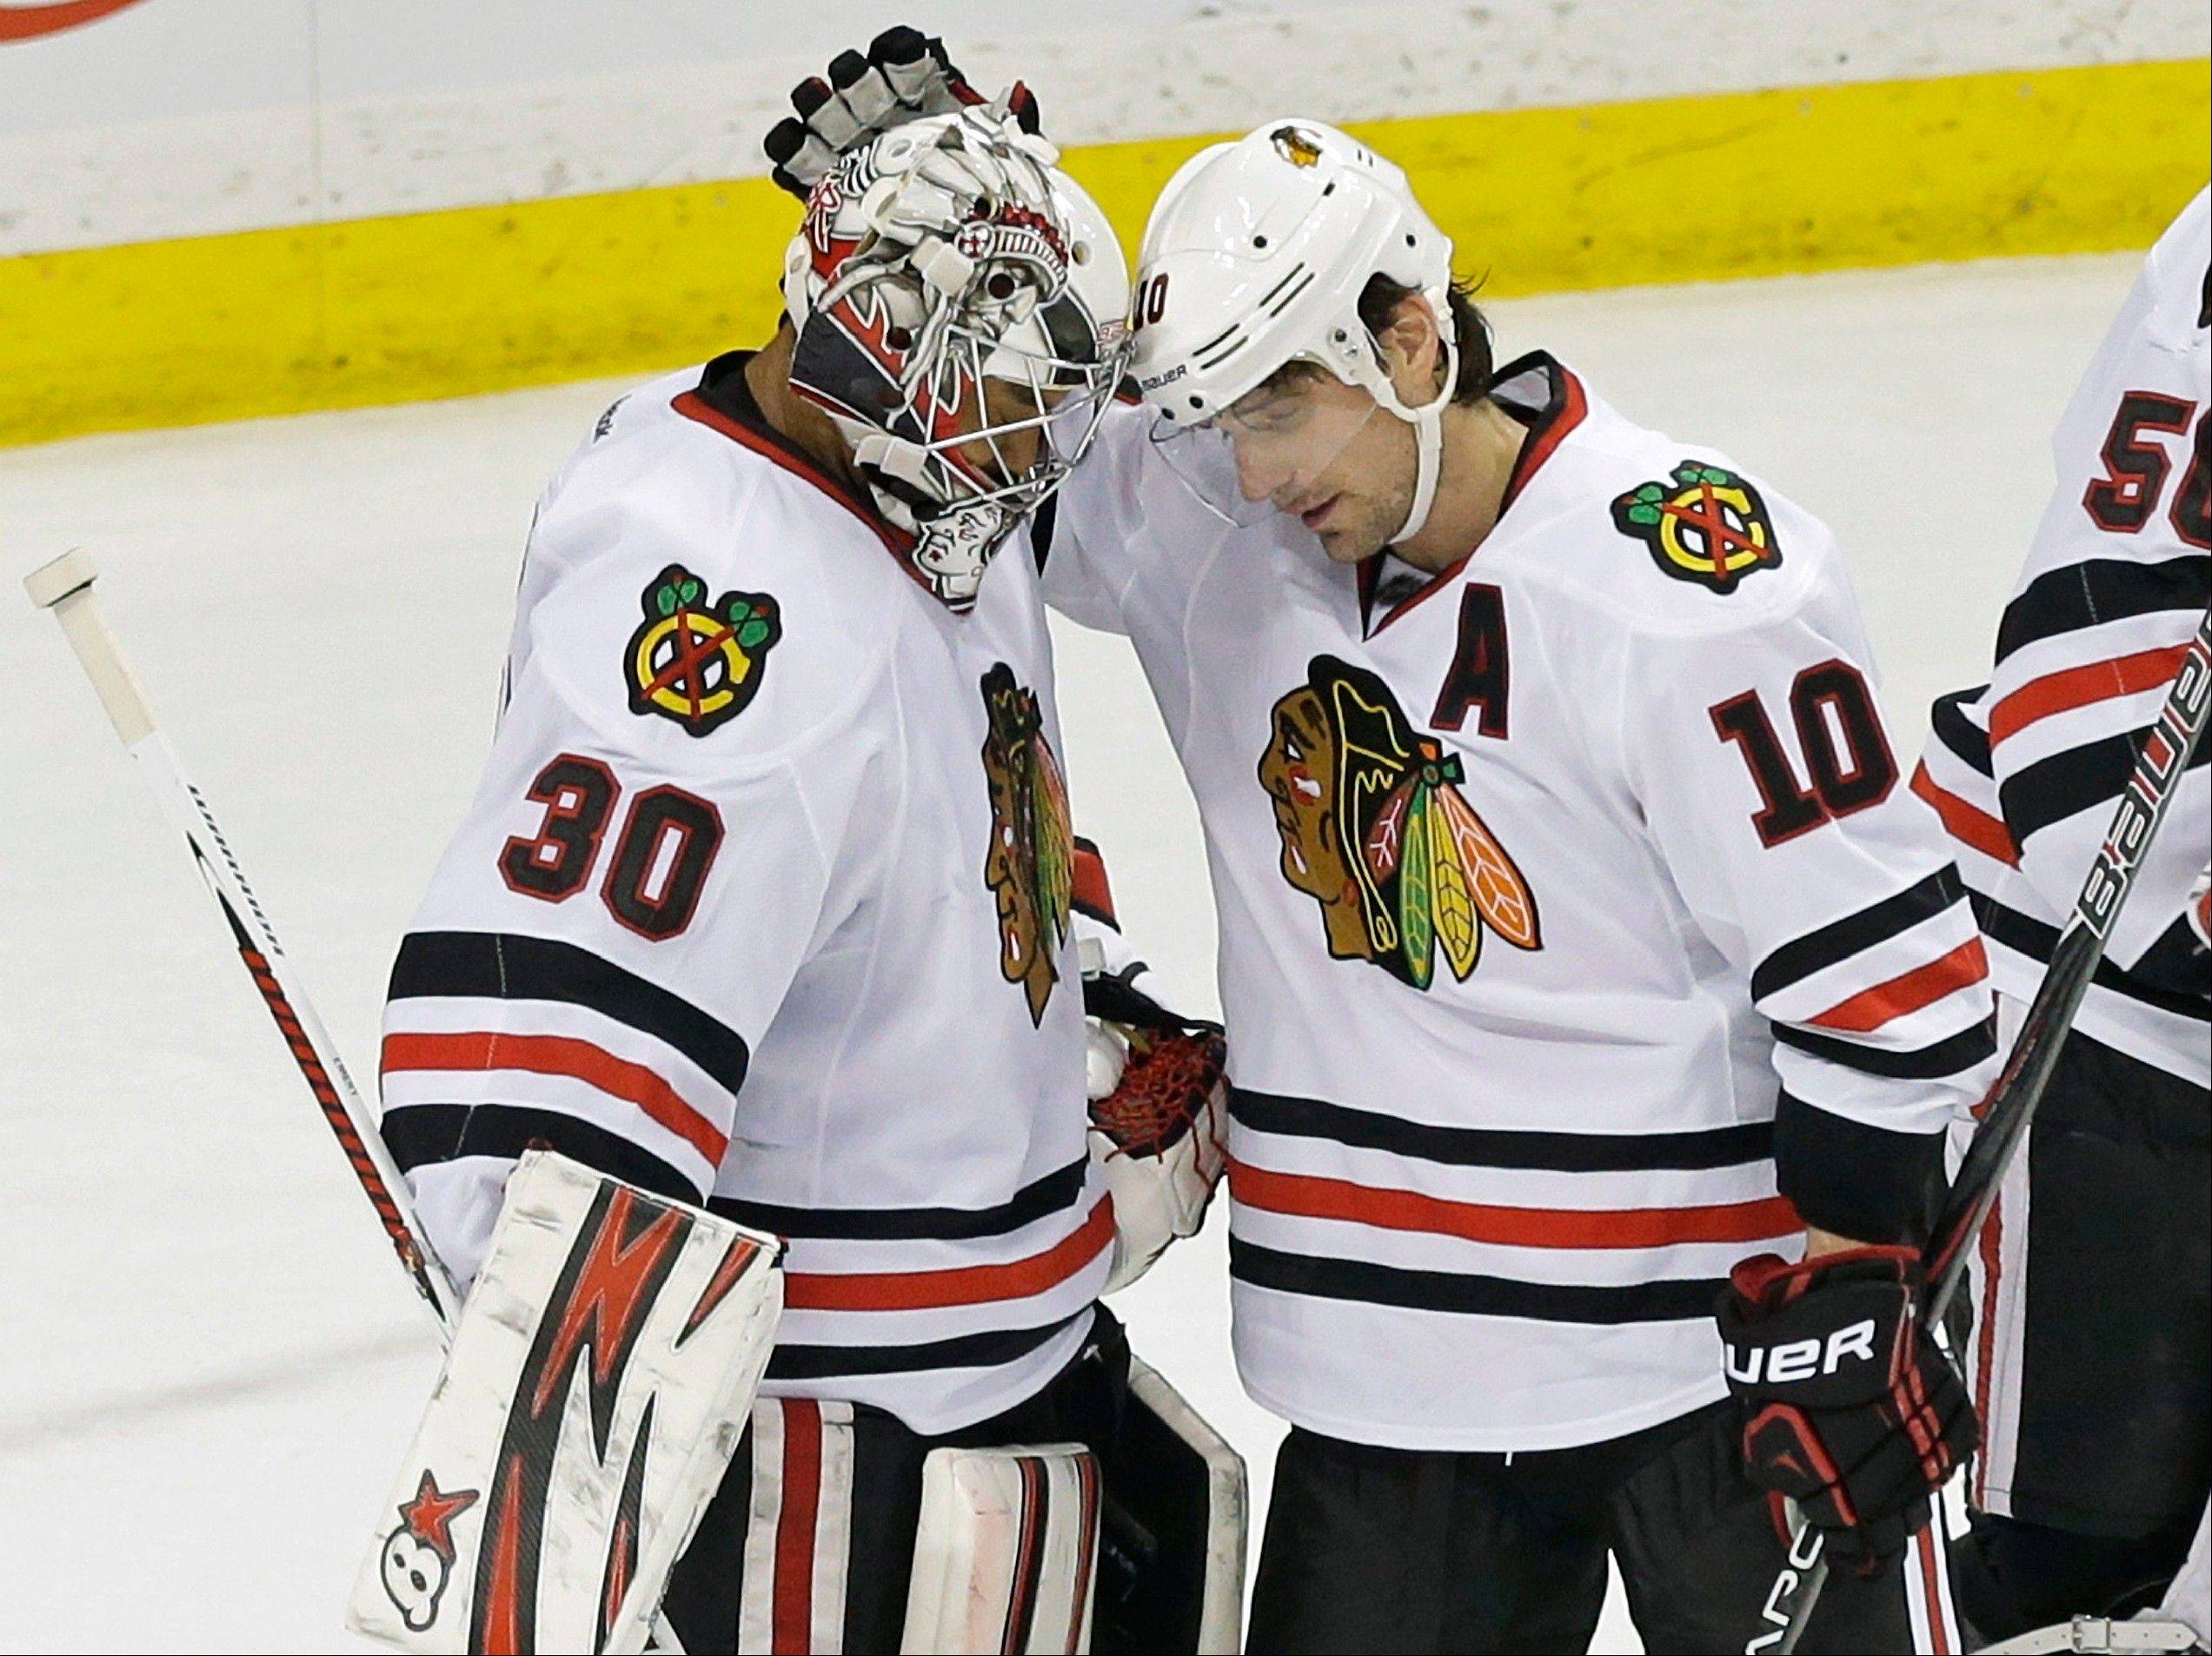 Chicago Blackhawks� Patrick Sharp, right, congratulates goalie Ray Emery after he shut out the Minnesota Wild in a 1-0 victory in an NHL hockey game Tuesday, April 9, 2013 in St. Paul.